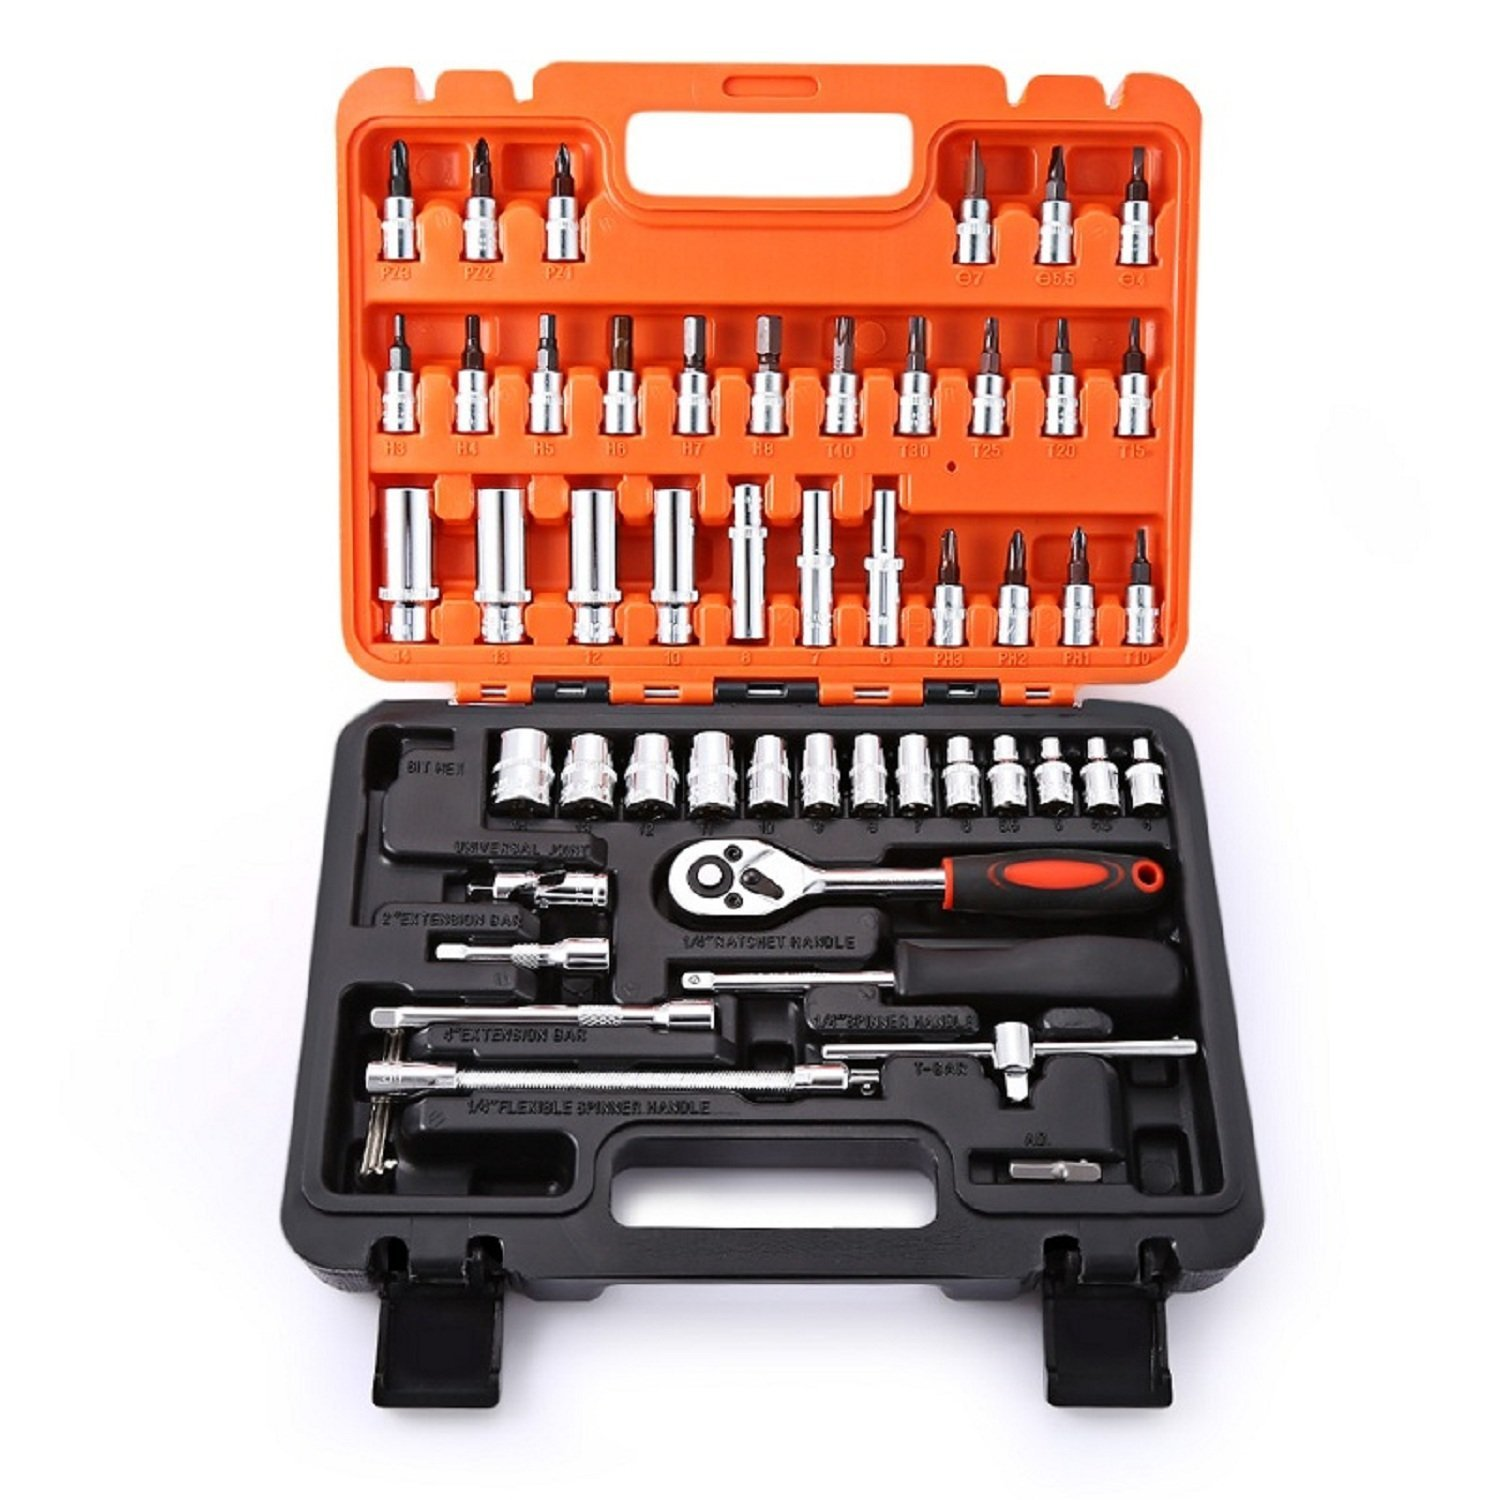 53PCS1/4-Inch Drive Socket Set Car Repair Tool Kit Ratchet Wrench Drive Socket Wrench Automobile Motorcycle Repair Hand Tool Set